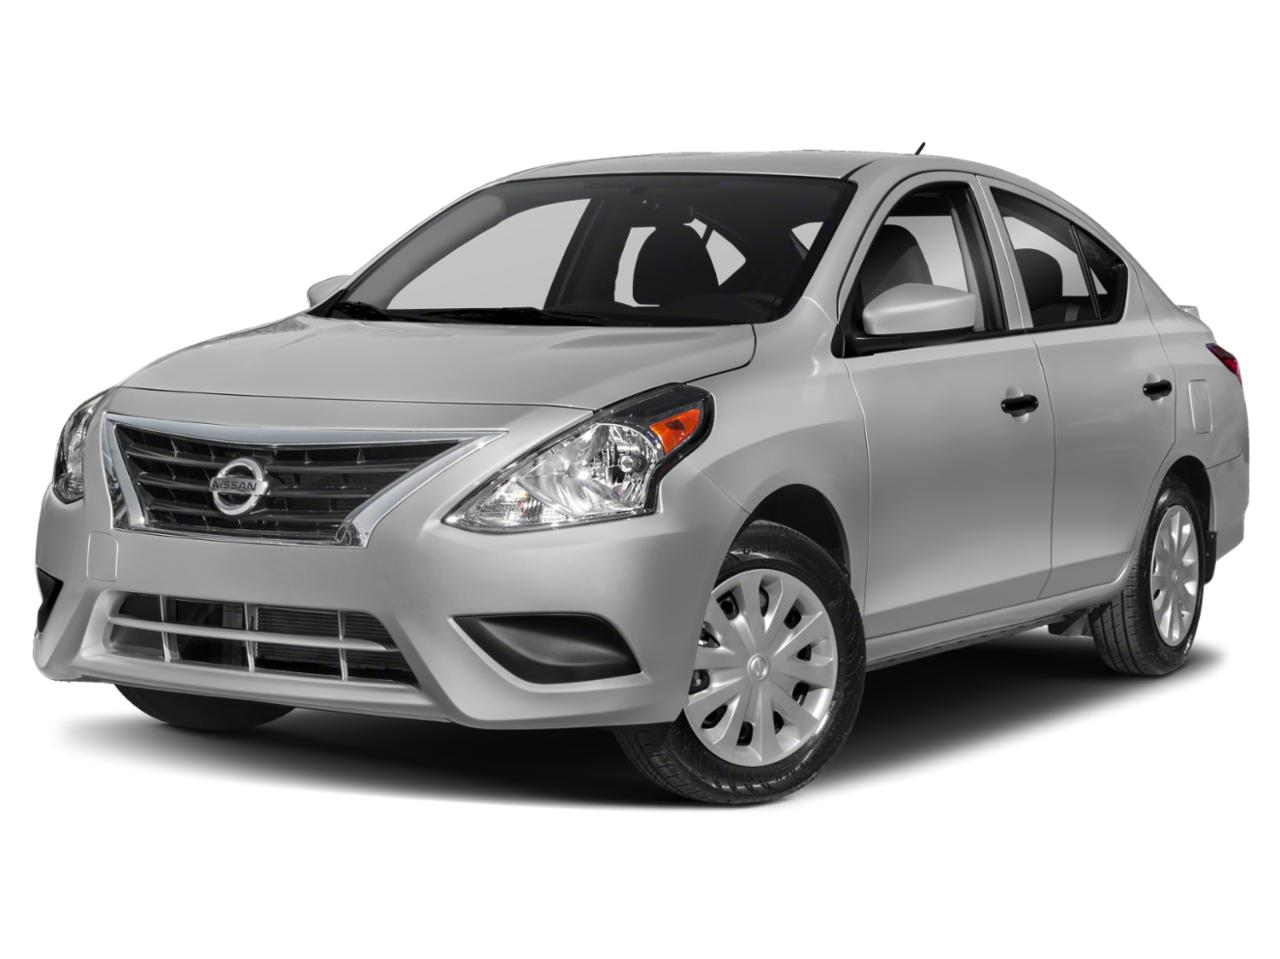 2019 Nissan Versa Sedan Vehicle Photo in Akron, OH 44312